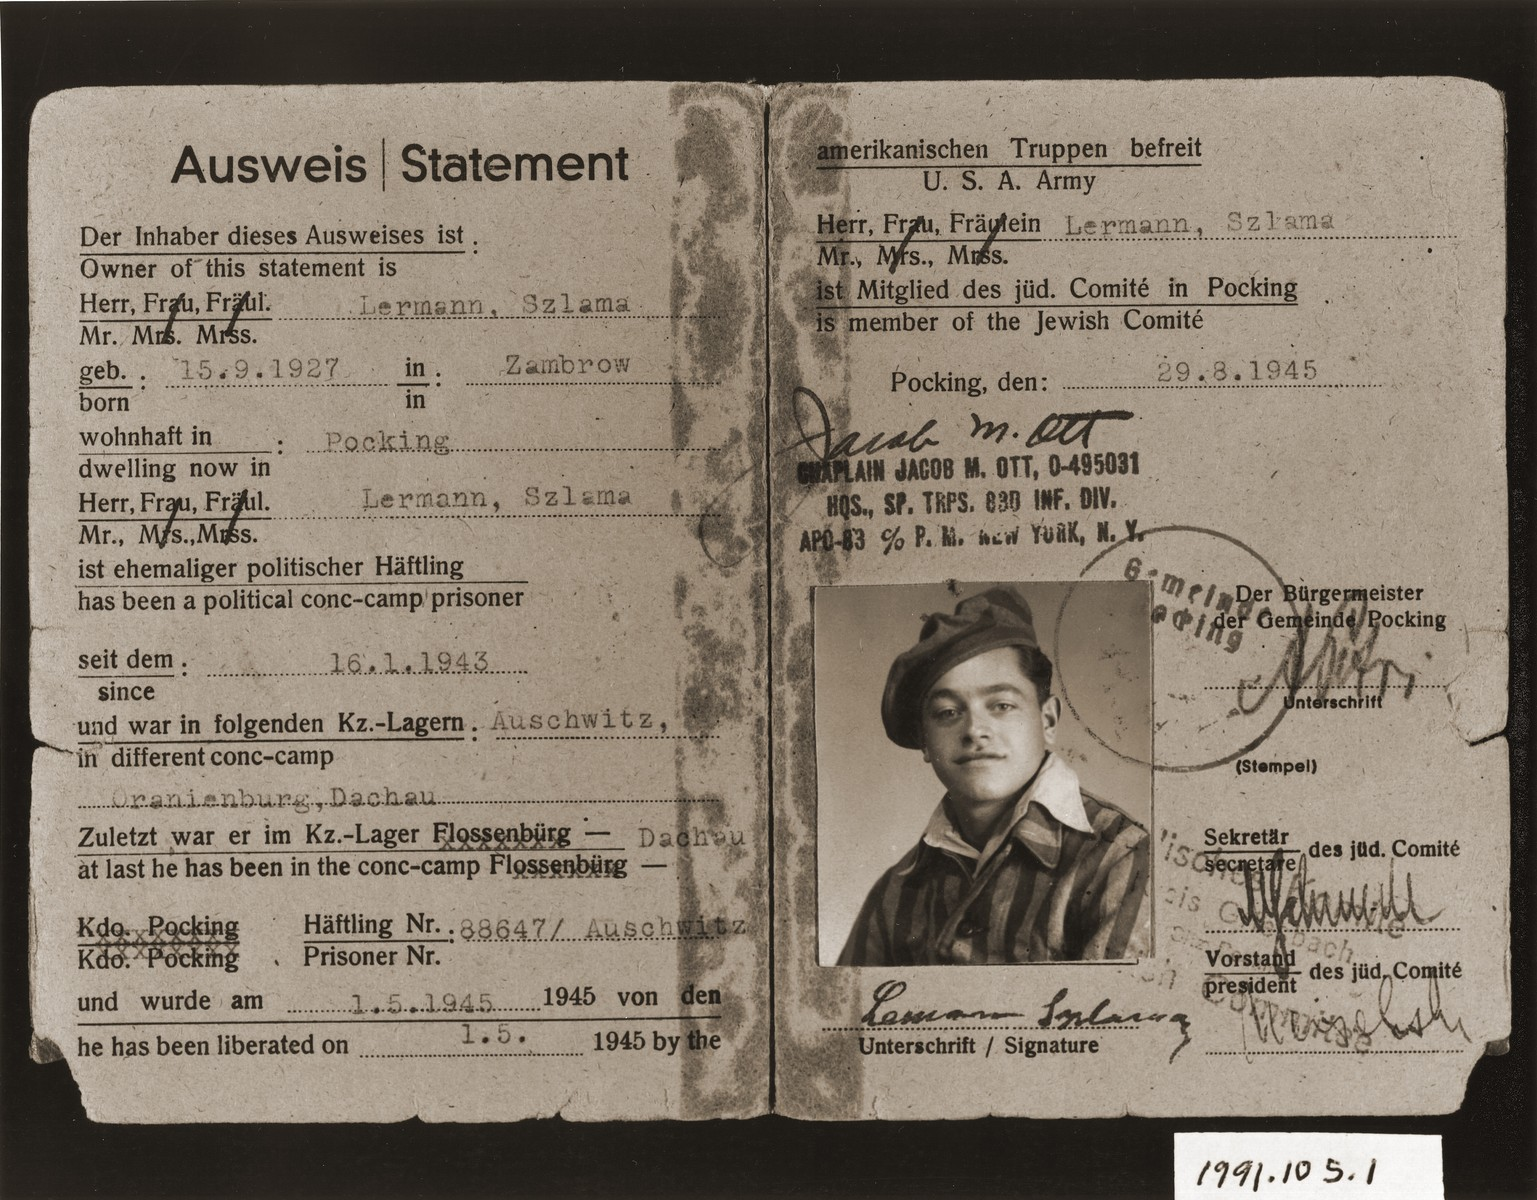 Identification card issued to Szlama Lermann (b. September 15, 1927), a survivor of Auschwitz, Oranienburg and Dachau, certifying him as a member of the Jewish Committee in the Pocking displaced persons camp.    The ID is signed by Chaplain Jacob Ott and the president and secretary of the committee.